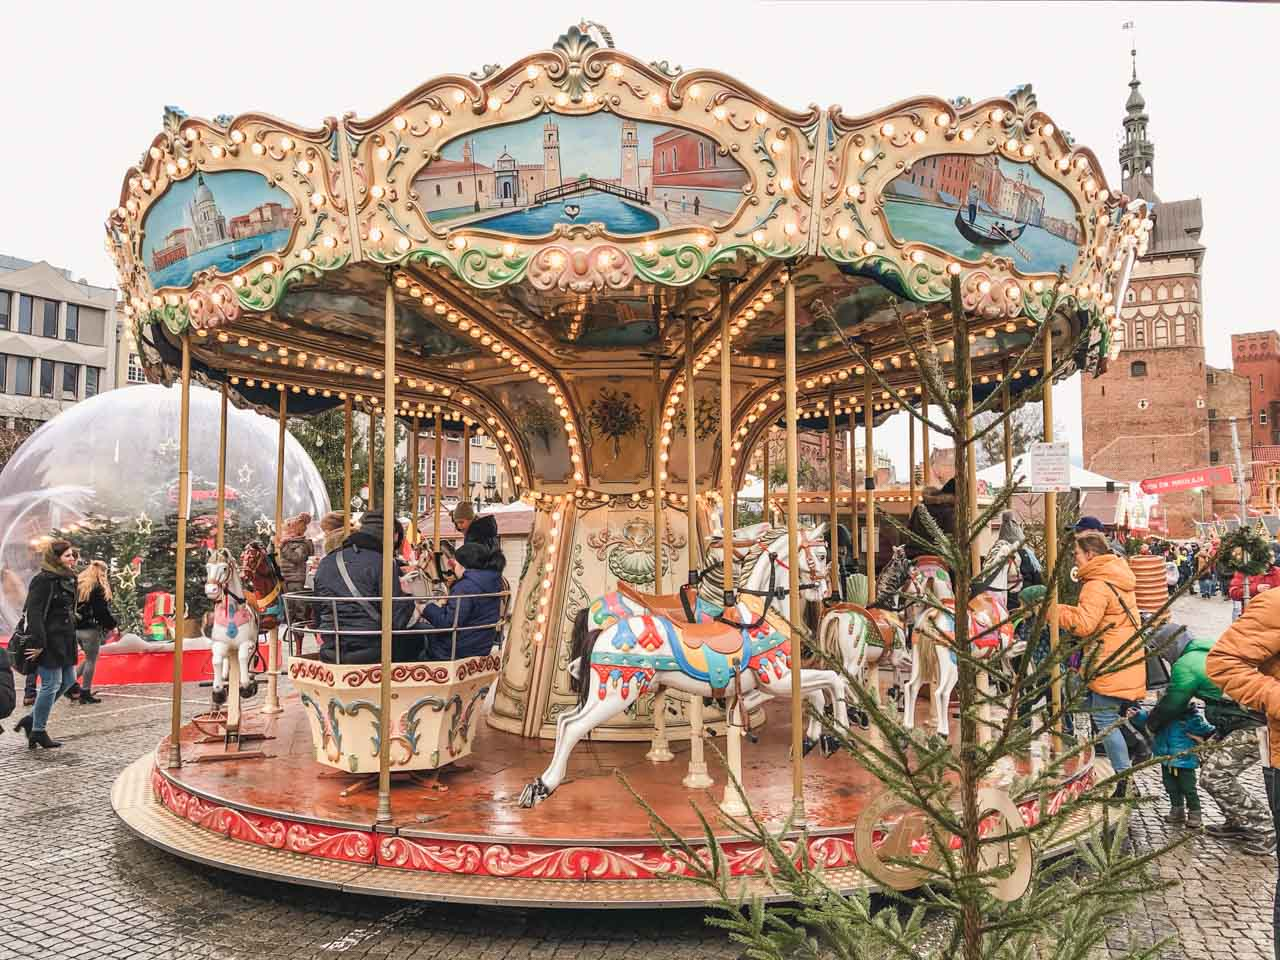 A carousel at the Christmas market in Gdańsk